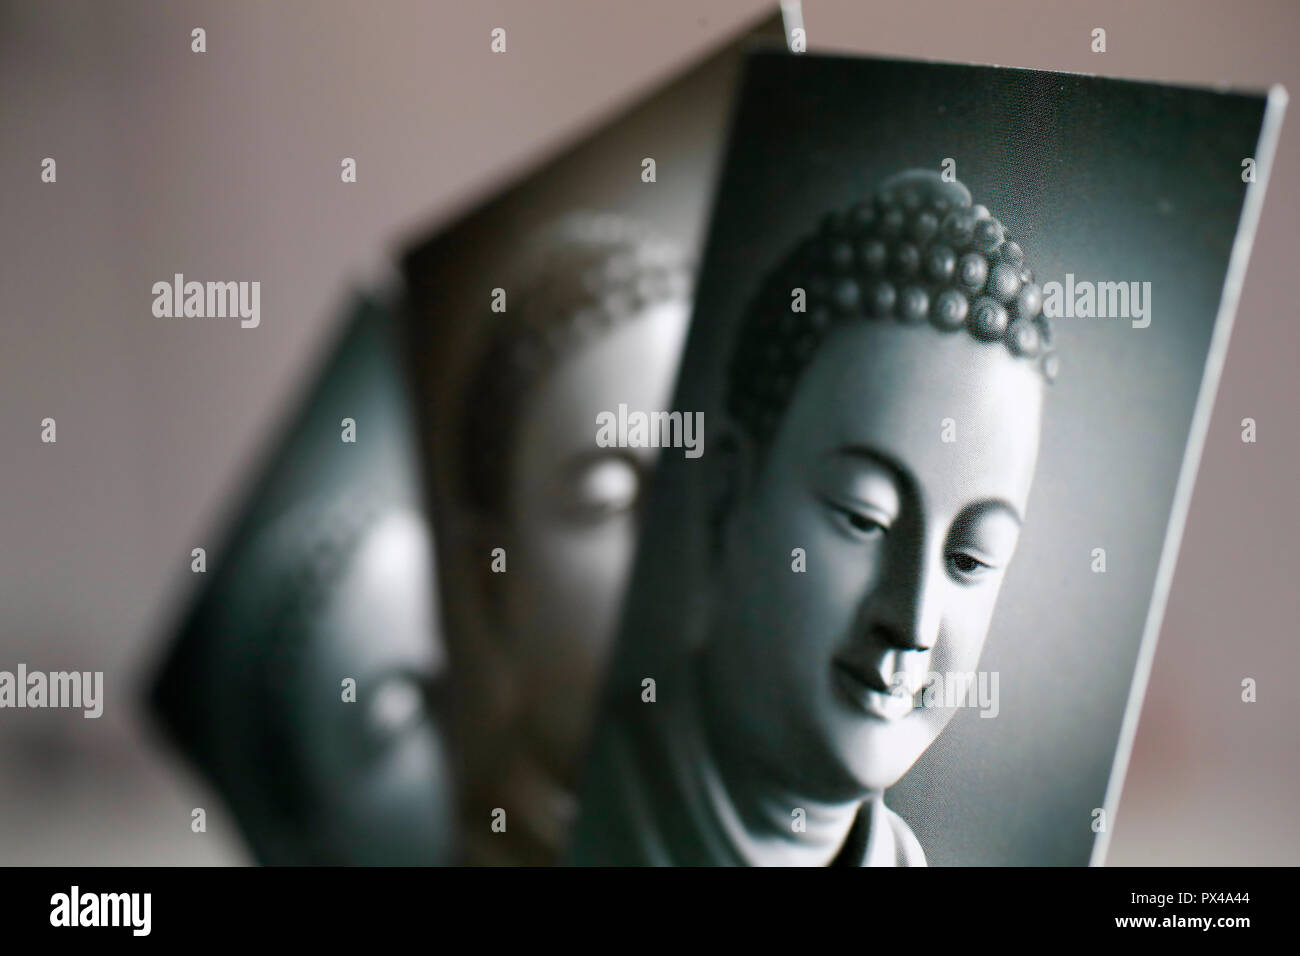 Three black and white images of the Buddha.  Ho Chi Minh City. Vietnam. - Stock Image